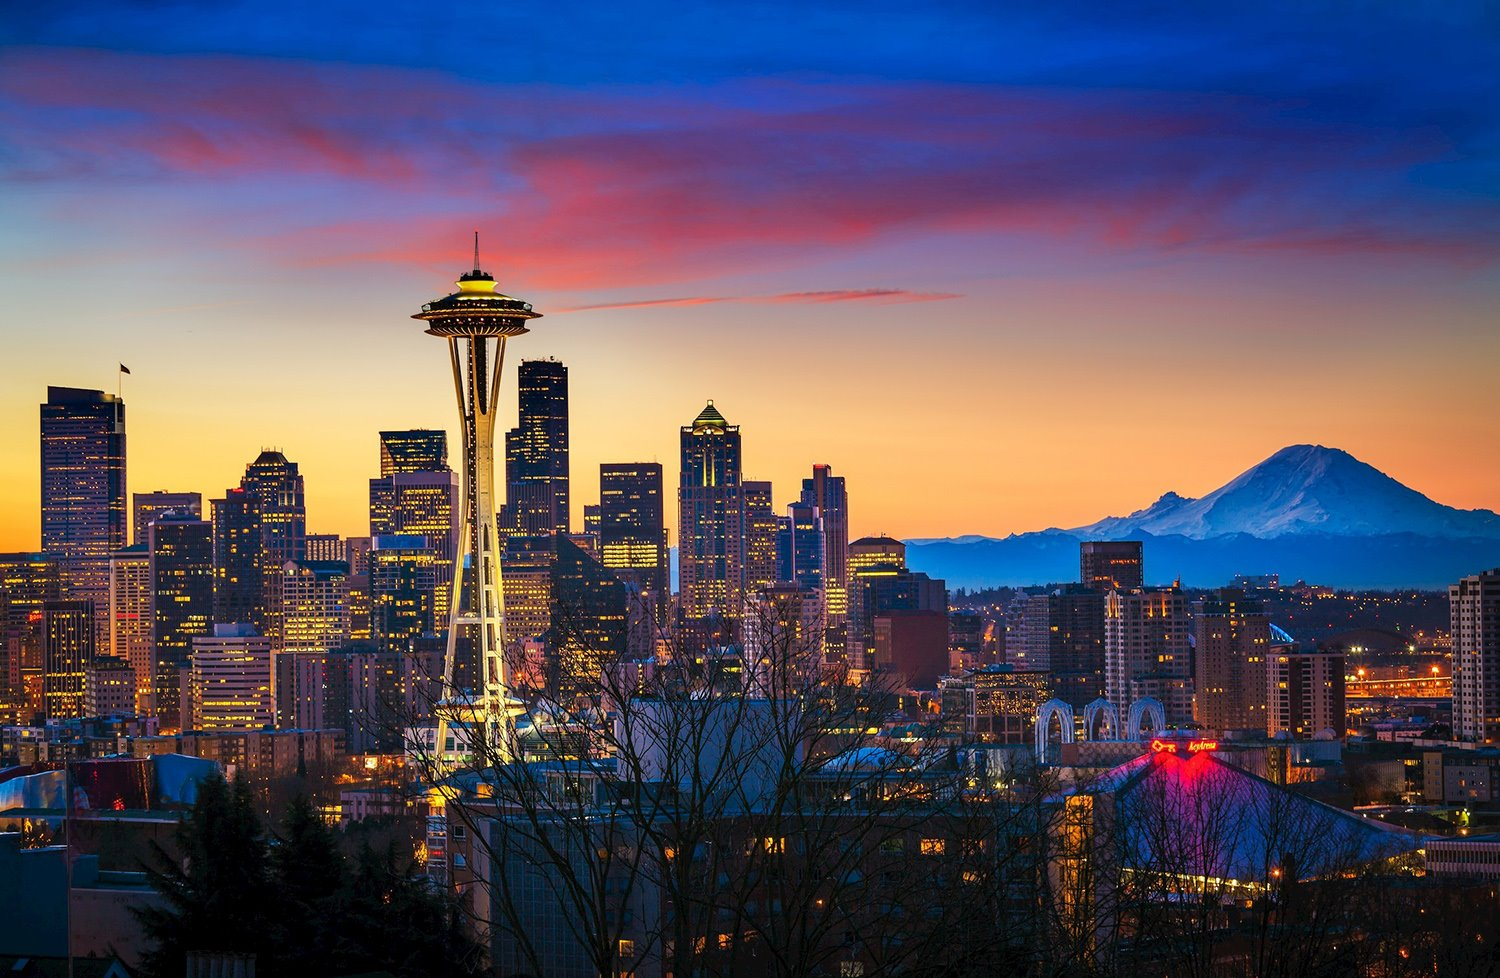 Seattle-EE UU . Seattle, Estados Unidos